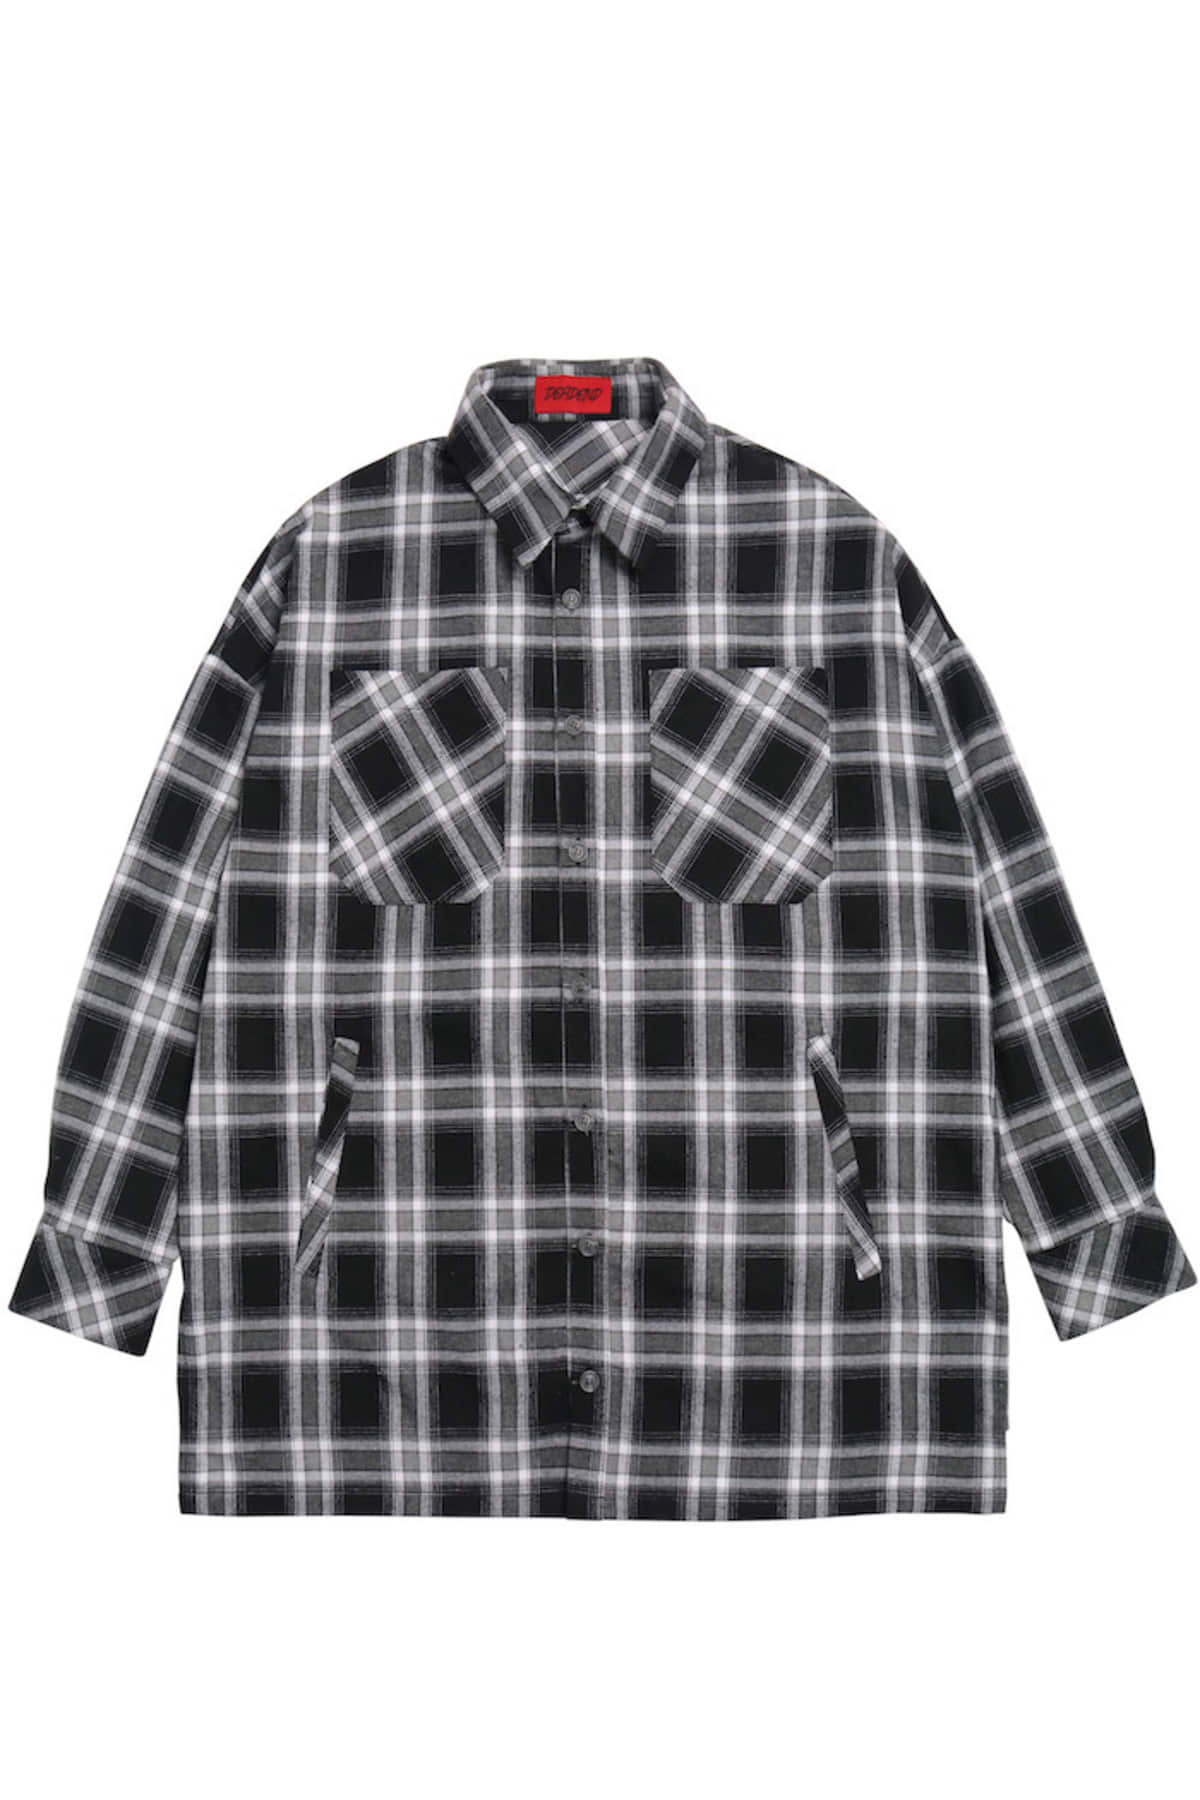 BLACK FLANNEL POCKET SHIRTS V2